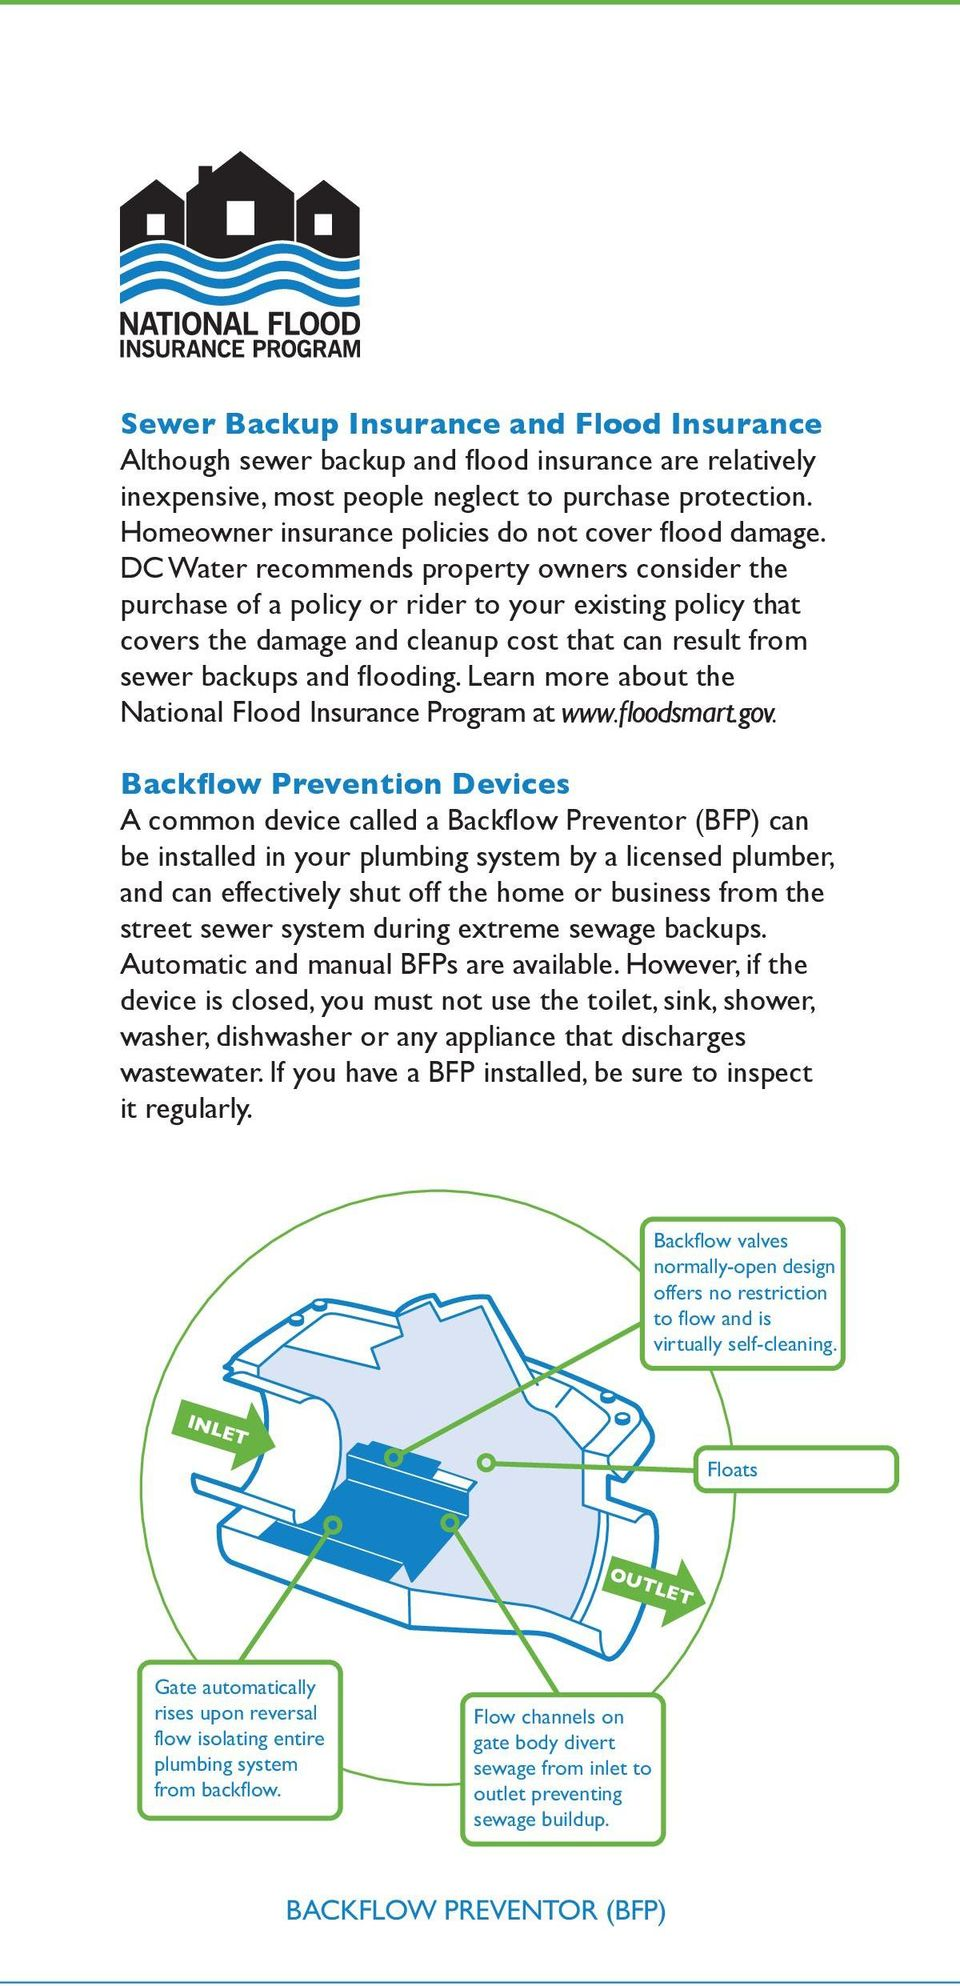 DC Water recommends property owners consider the purchase of a policy or rider to your existing policy that covers the damage and cleanup cost that can result from sewer backups and flooding.